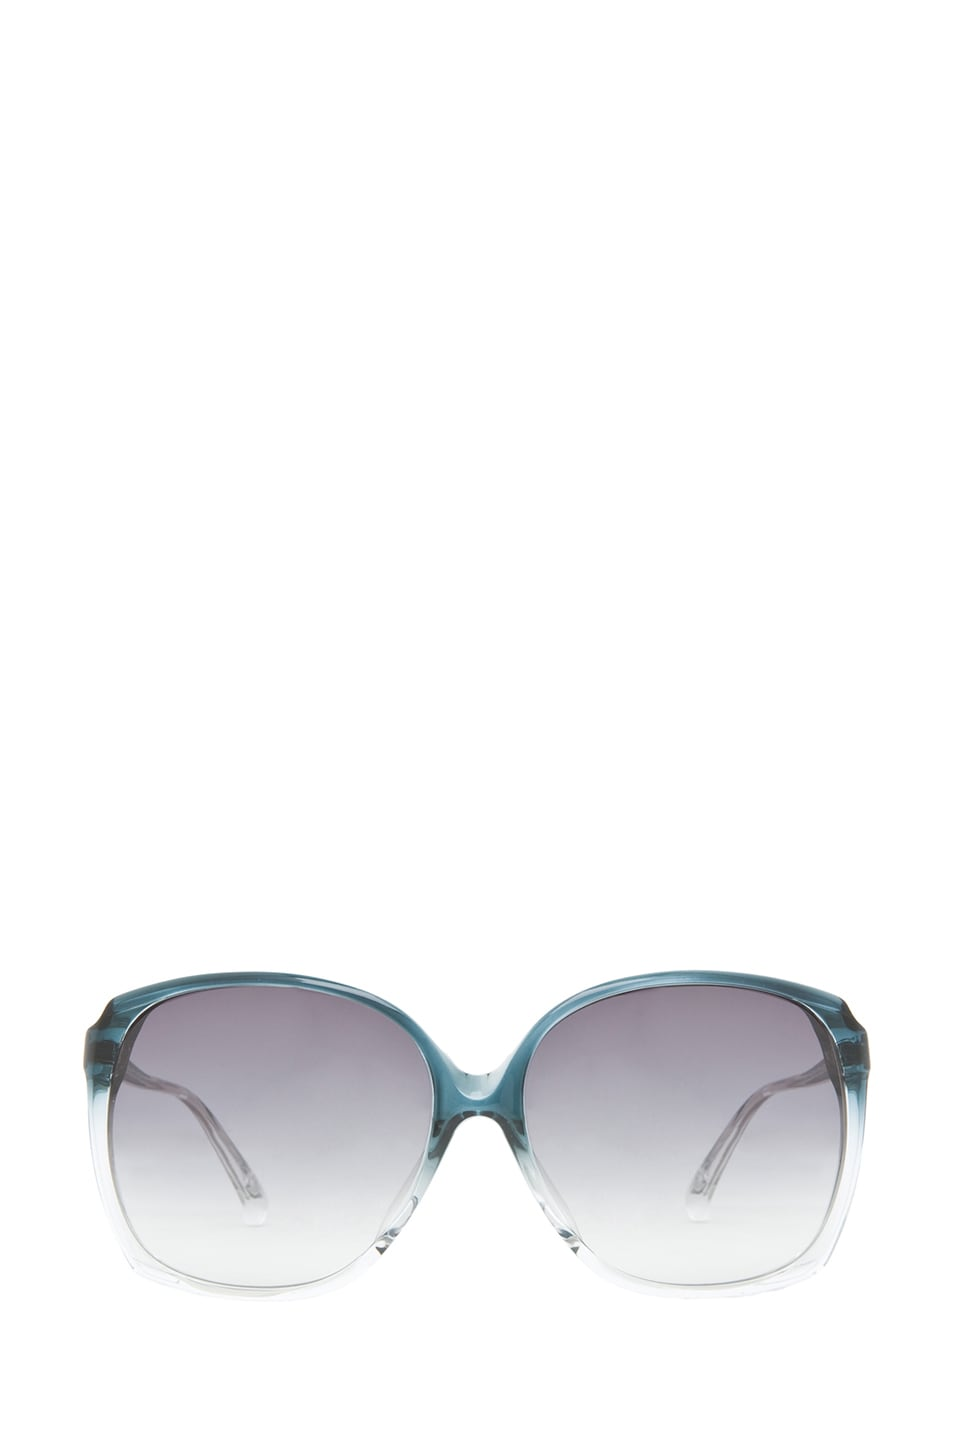 Image 1 of Matthew Williamson Acetate Sunglasses in Ocean Gradient